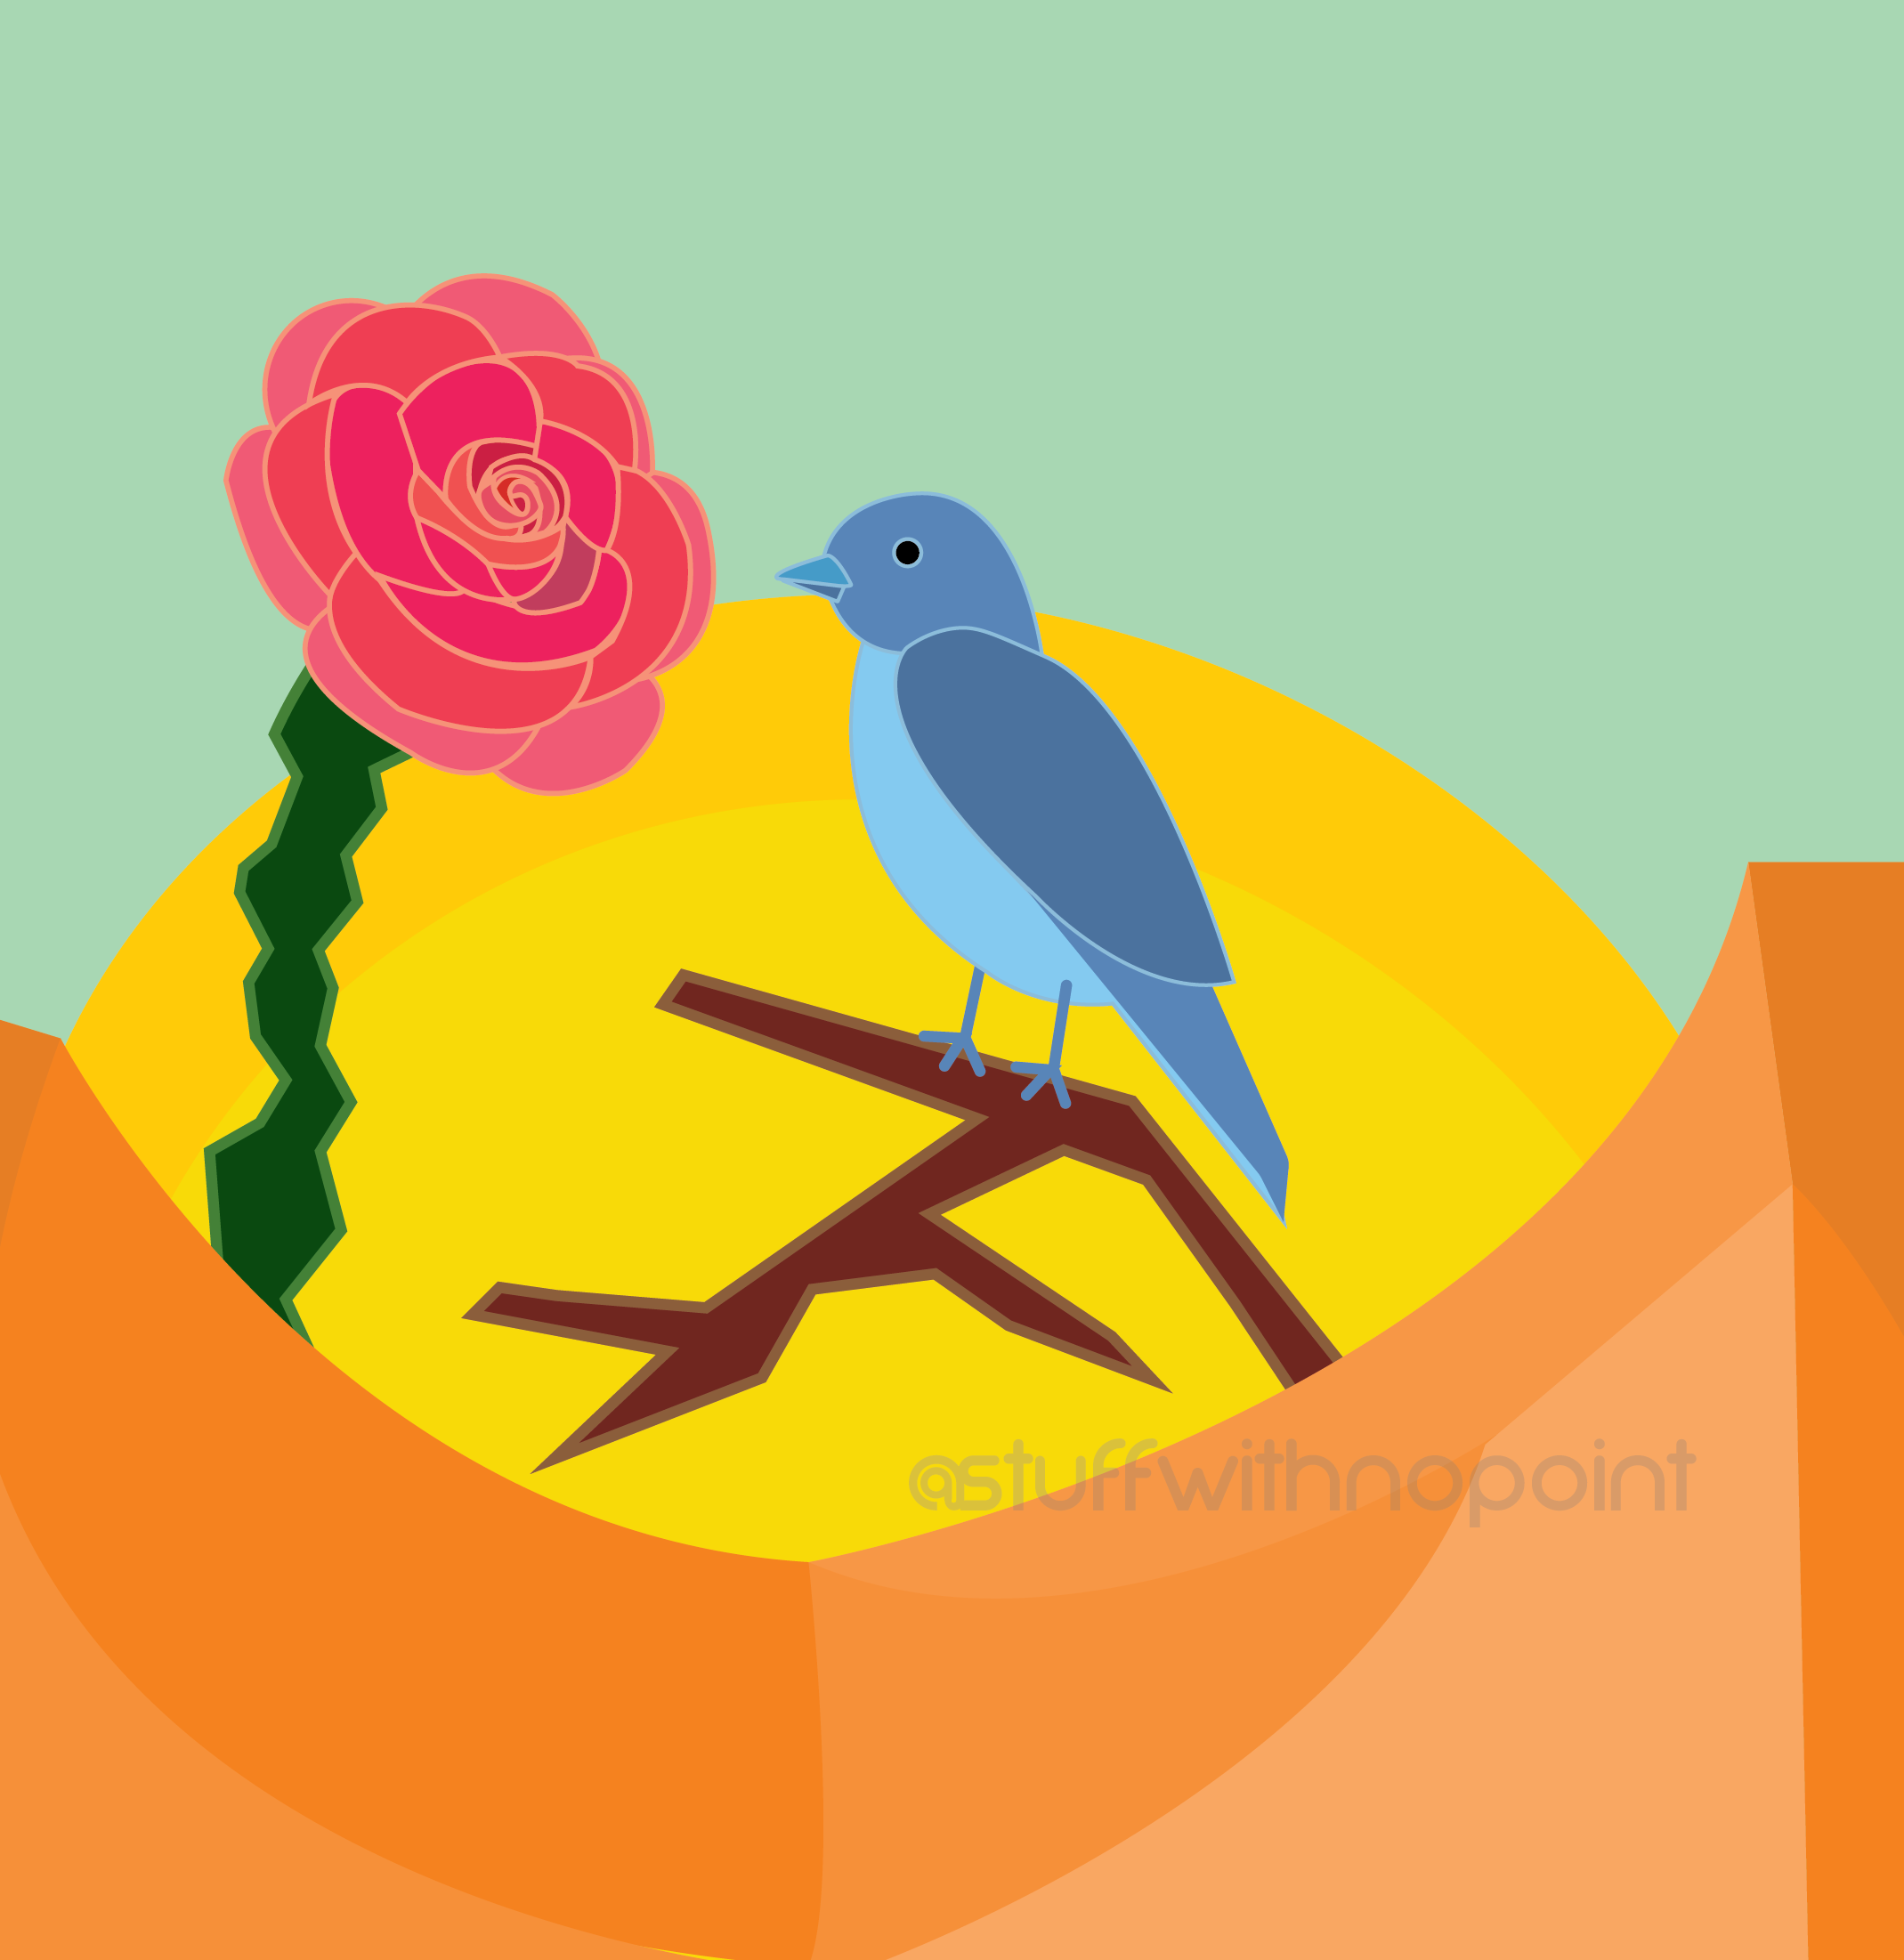 Blue bird on a branch that sits on orange curved ground. Red flower in front of bird and a yellow/orange sun behind.